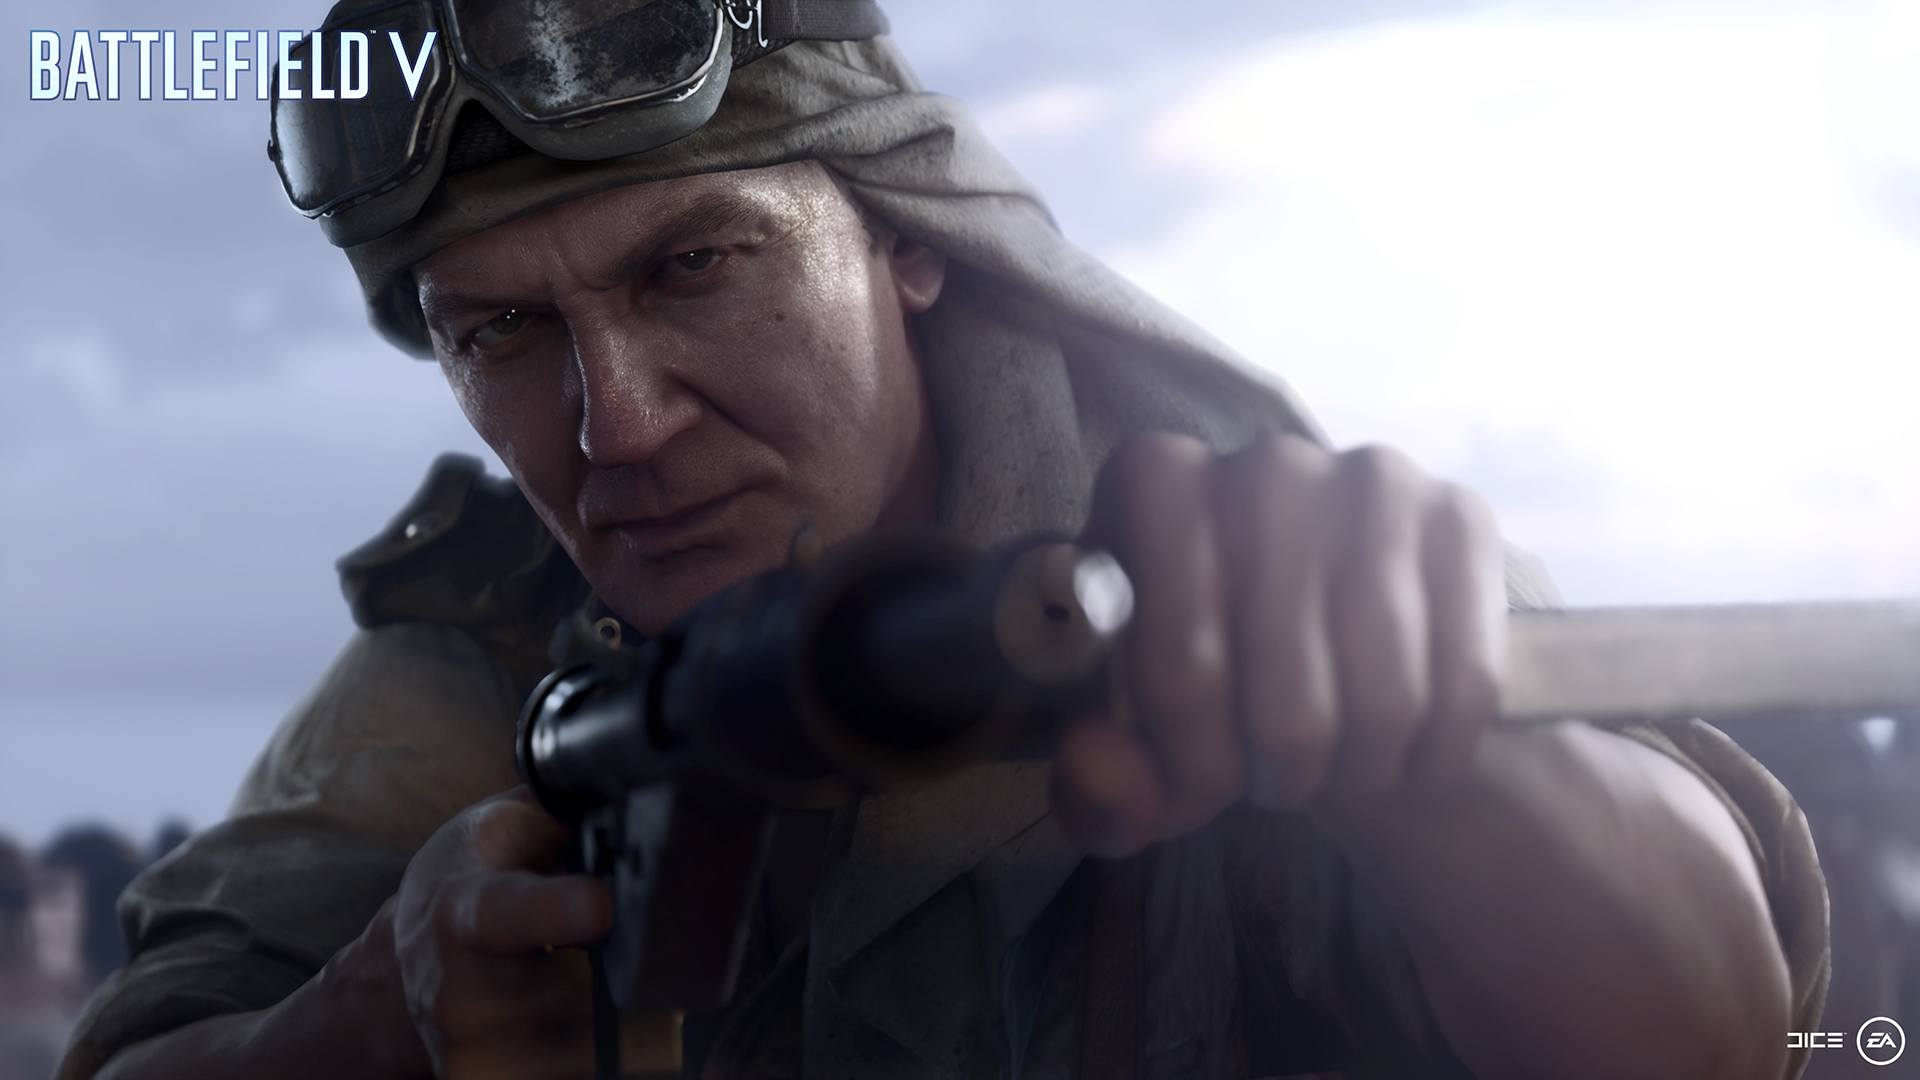 Battlefield V - the untold stories of WWII